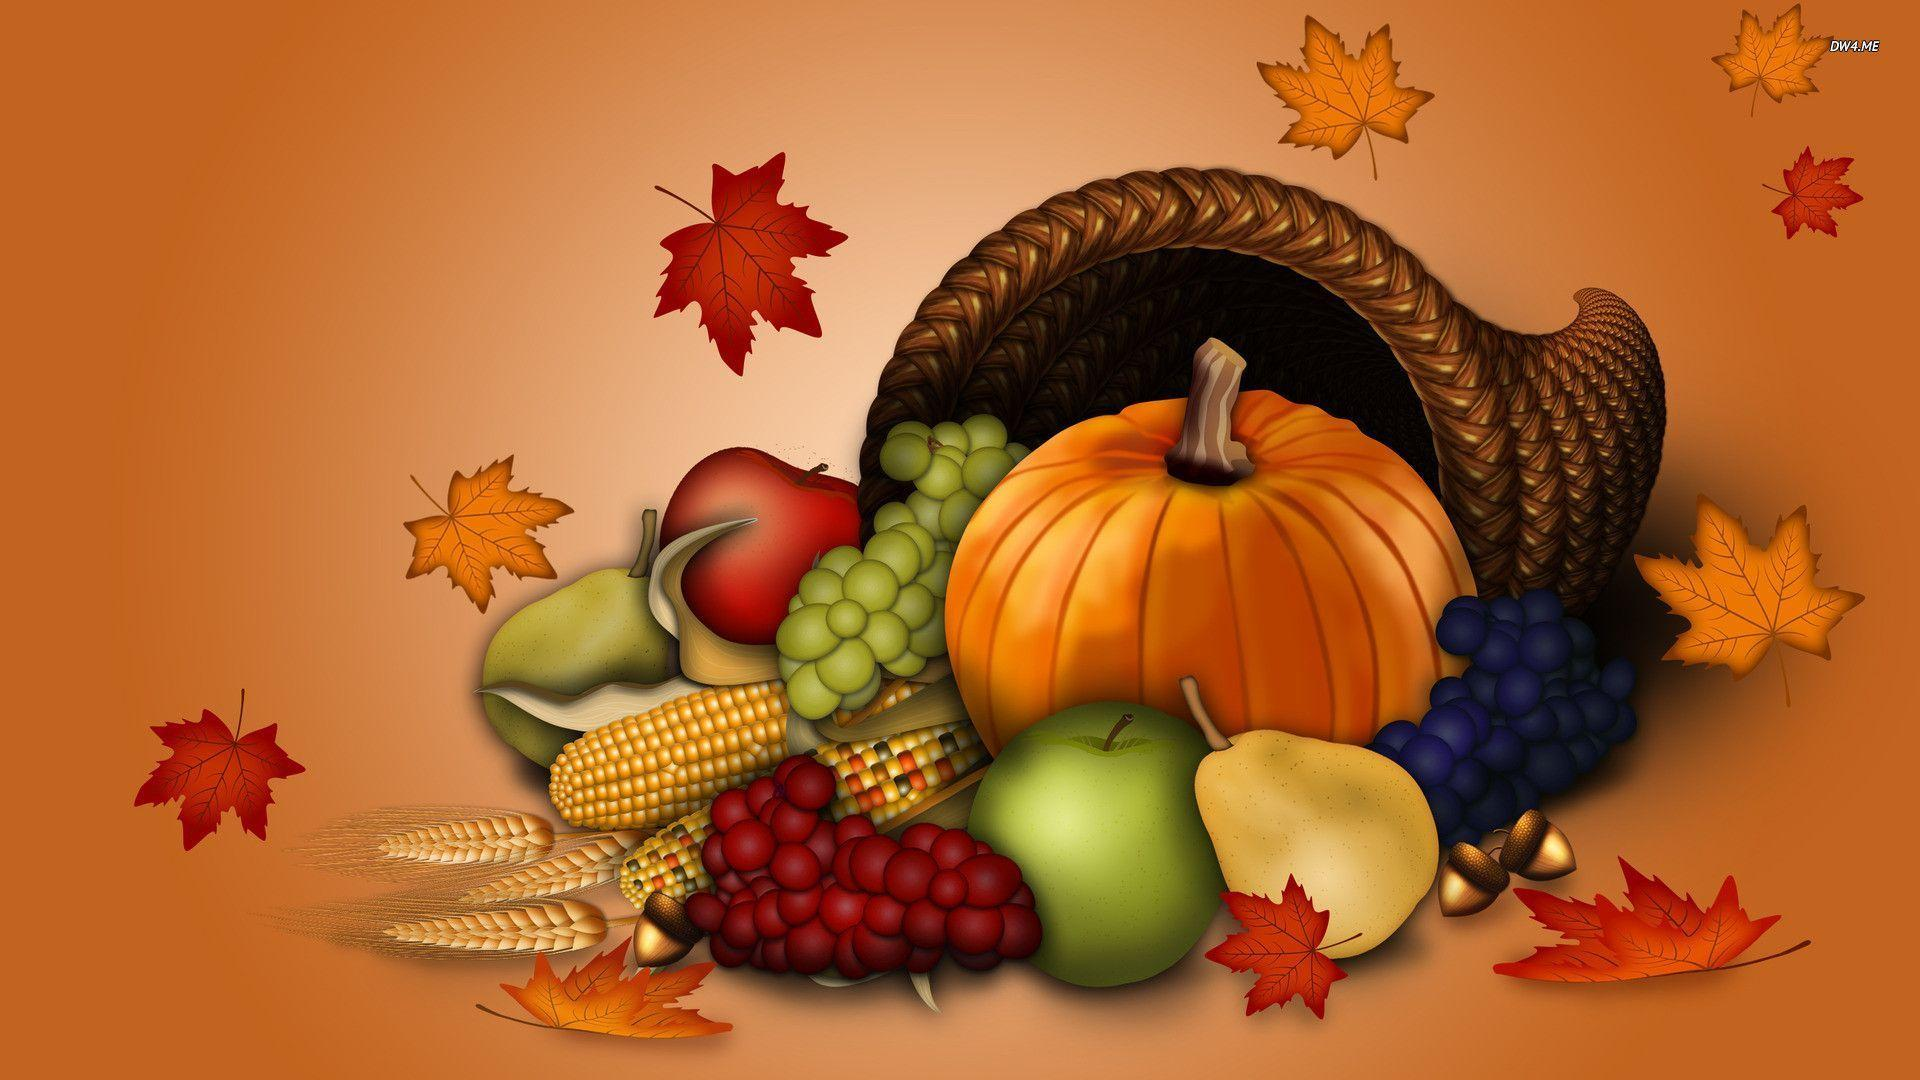 pixel wallpaper thanksgiving free - photo #11